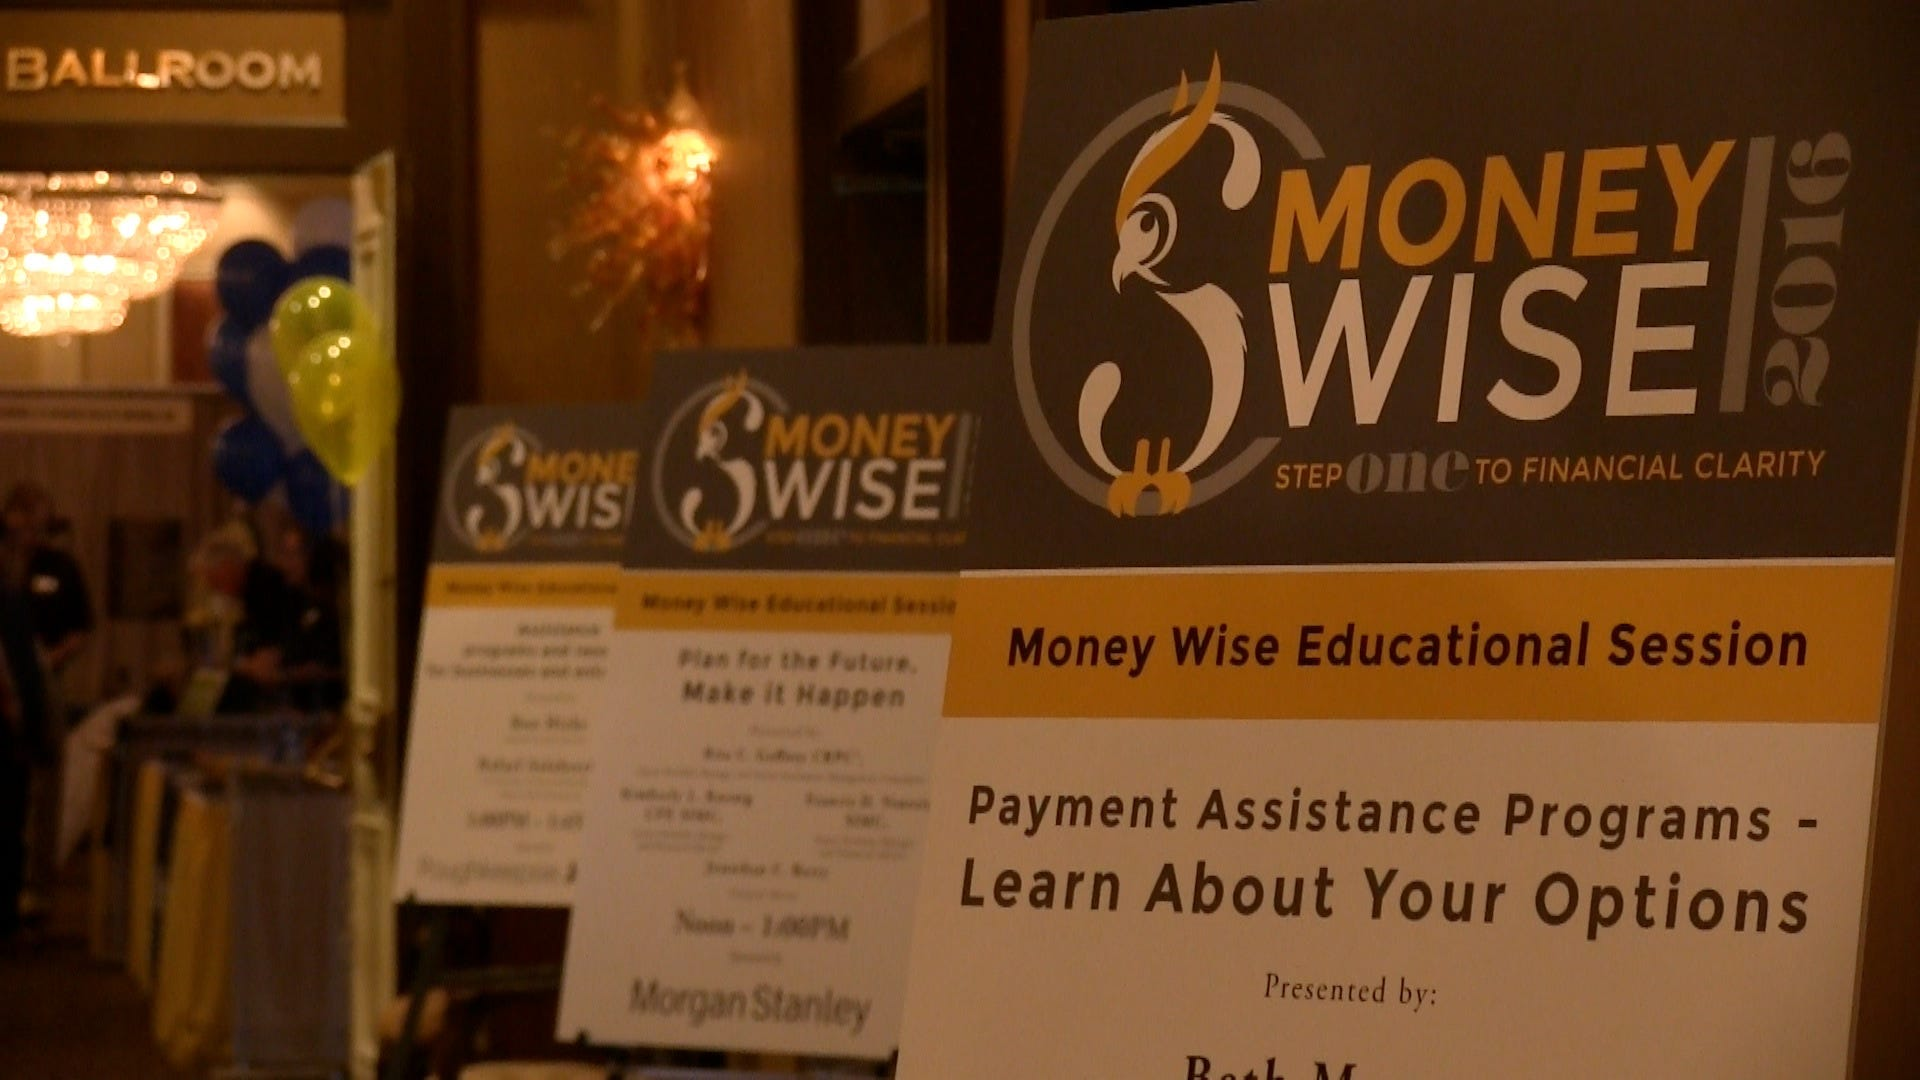 Money Wise Expo brings widespread praise